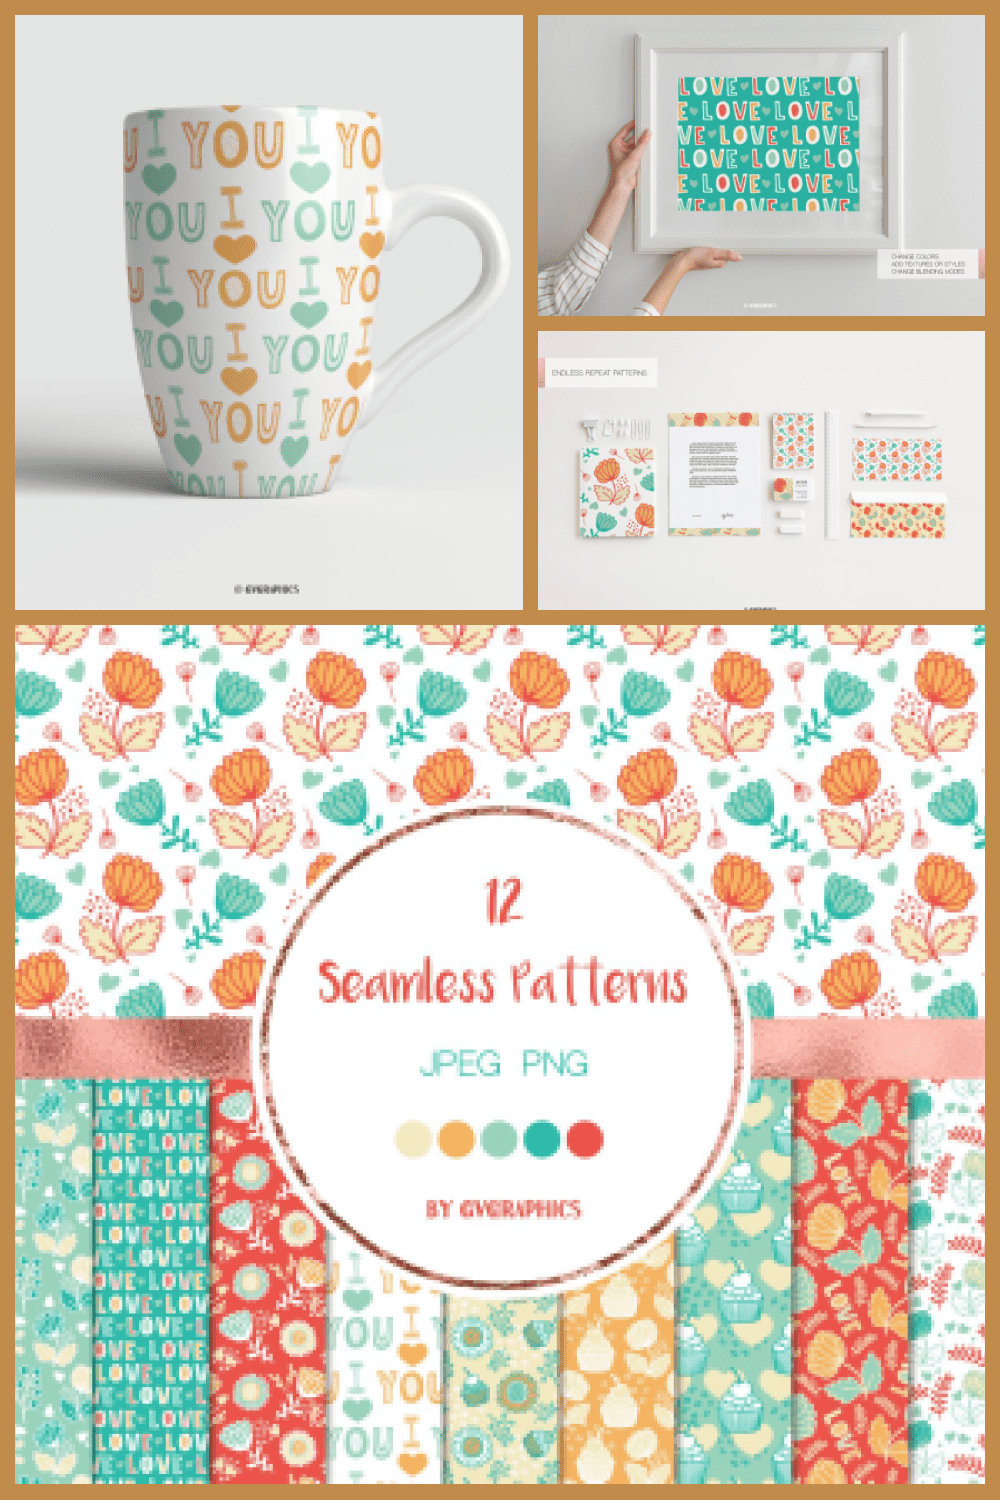 Love, Muffins and Flowers Seamless Patterns - MasterBundles - Pinterest Collage Image.